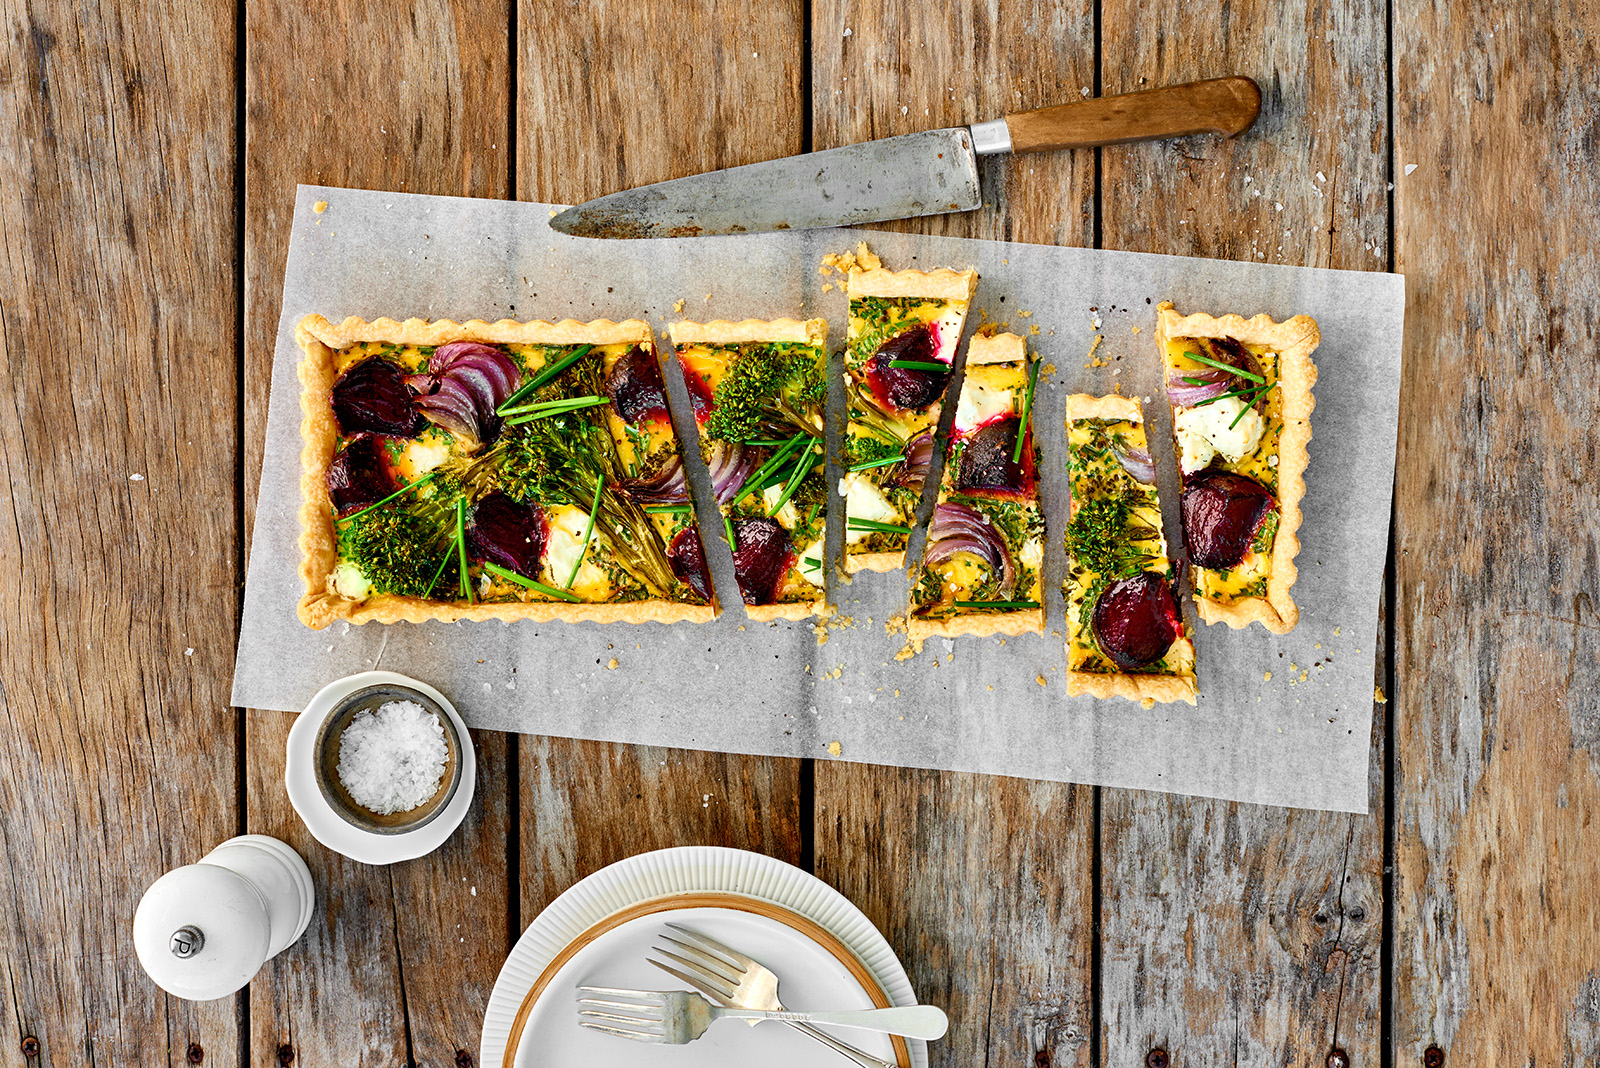 Beetroot, broccoli, goats cheese and chive tart